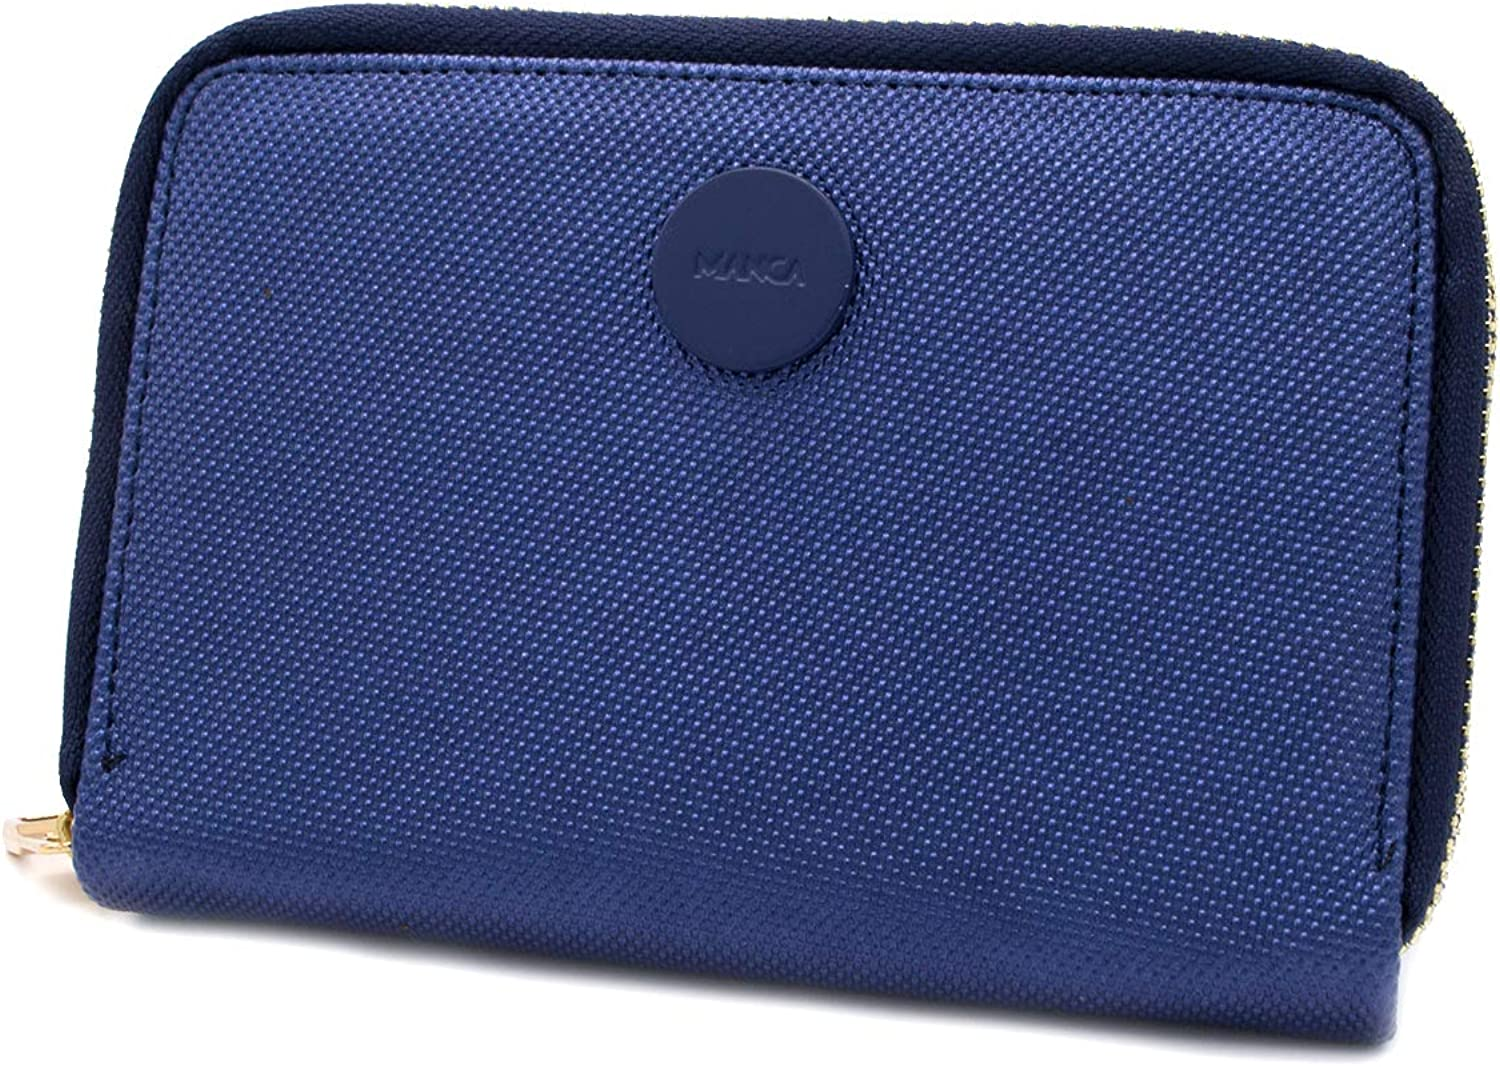 MANCA Women's Two Wedge PU Leather Wallet CB1415